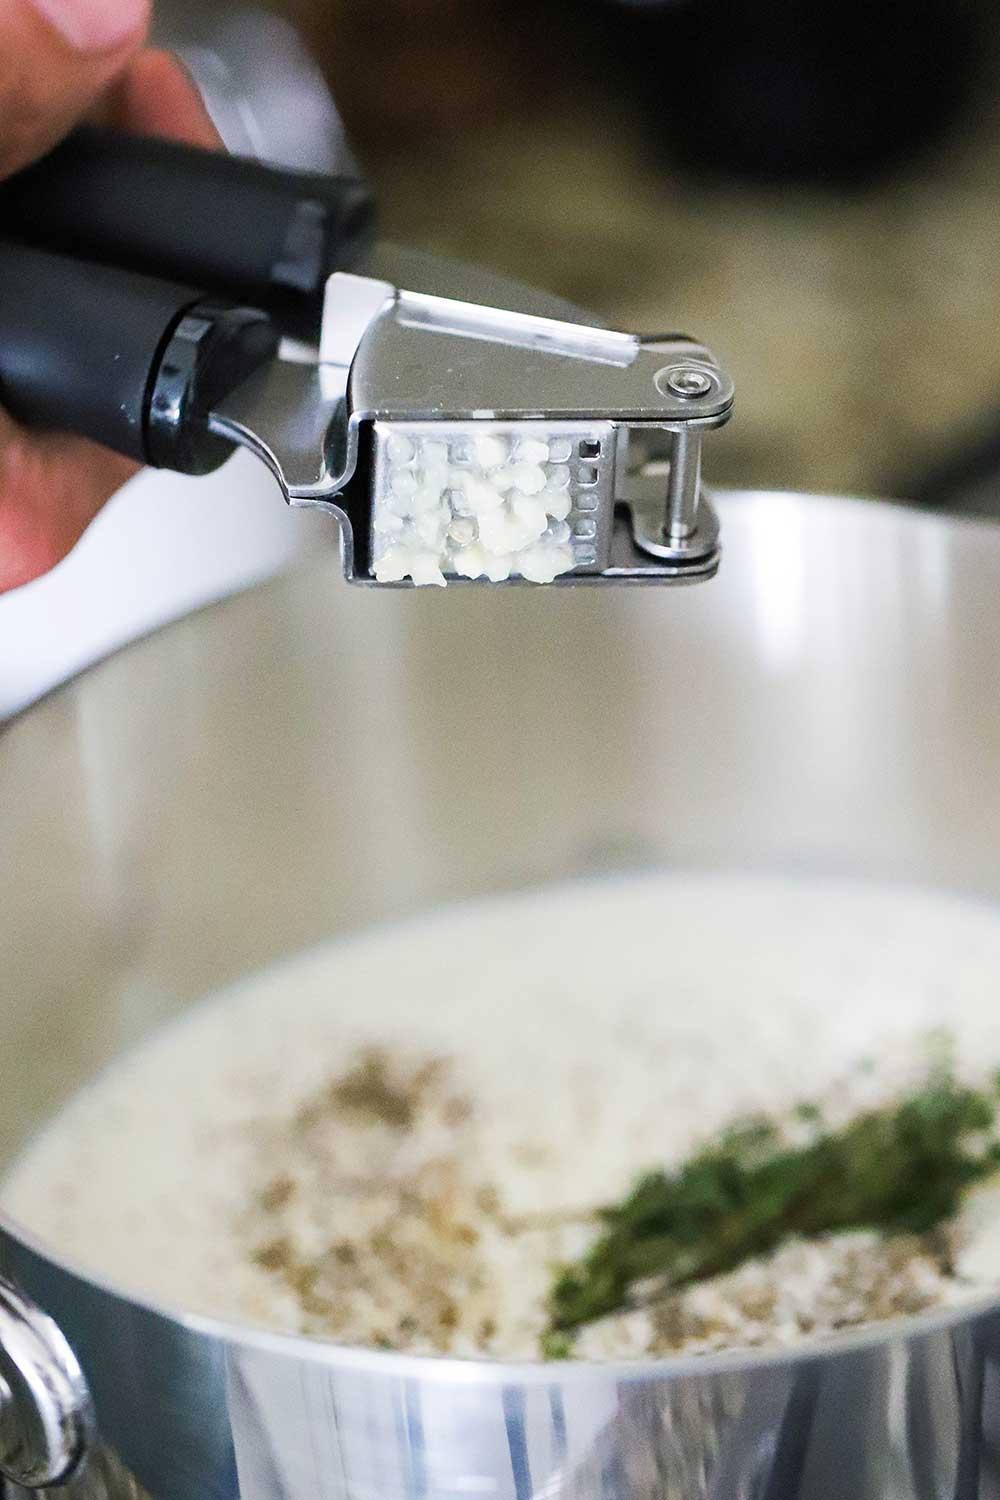 A person squeezing garlic out of a garlic press into a pan filled with cream and herbs.